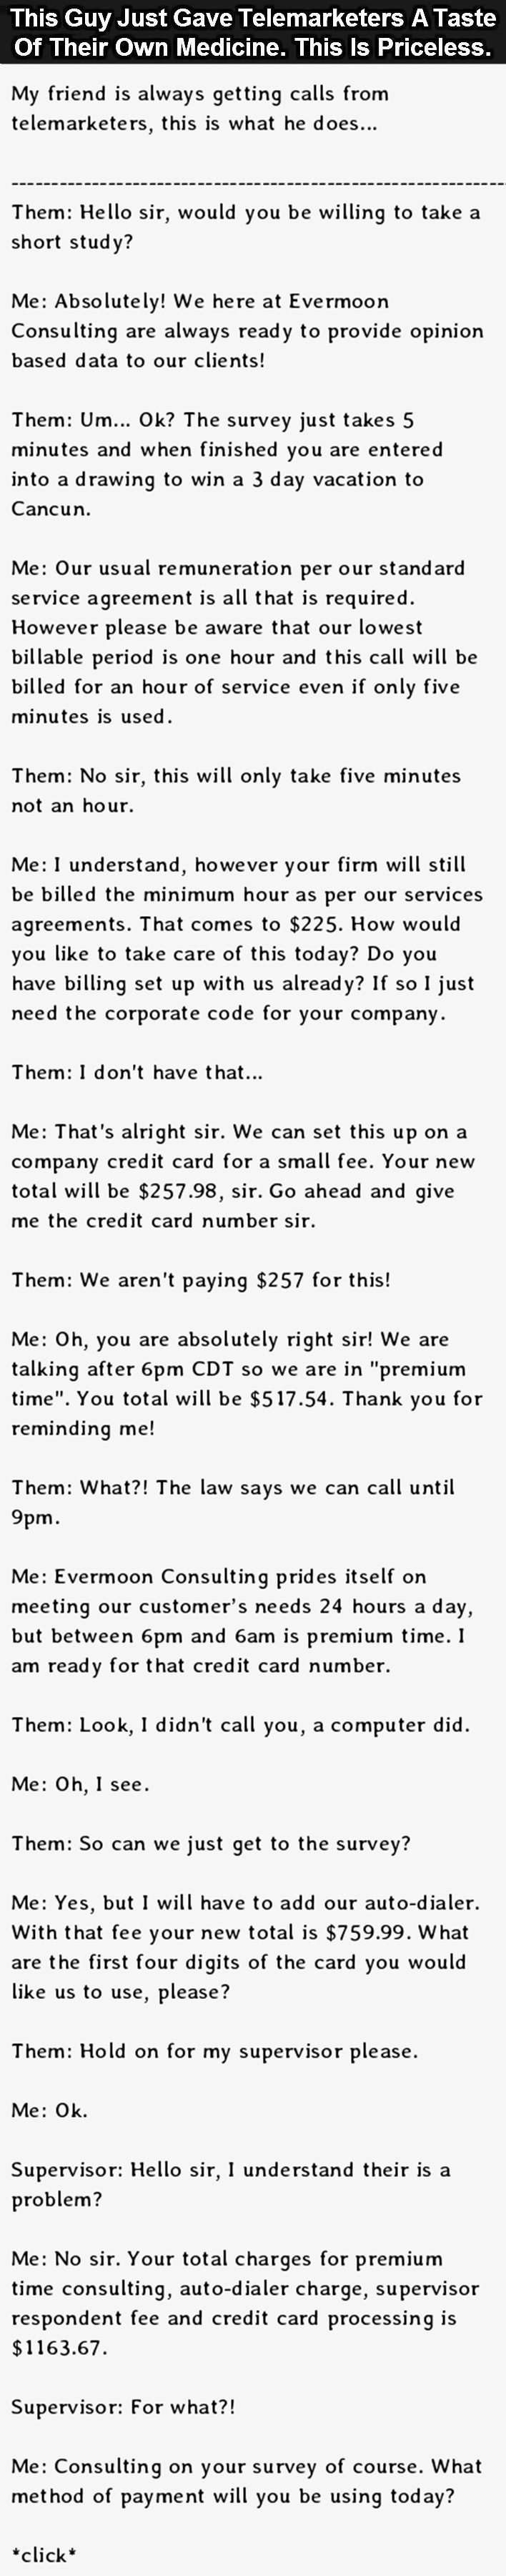 telemarketers A_101410